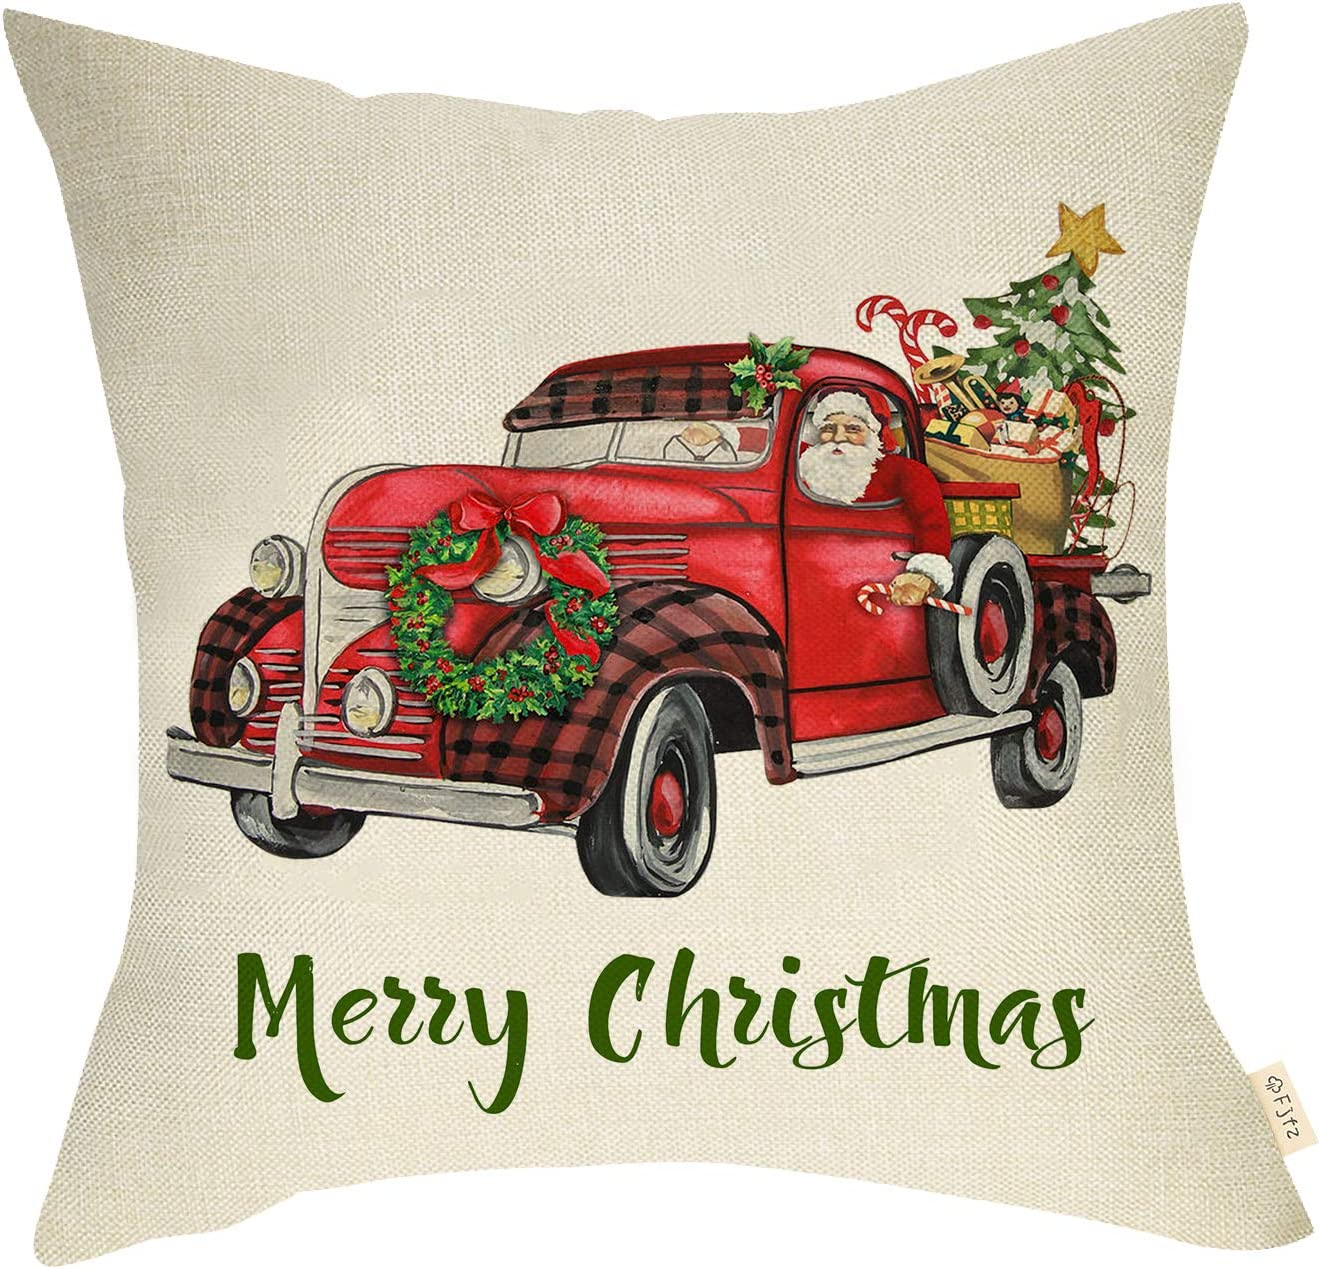 Fjfz Christmas Farmhouse Decorative Throw Pillow Cover Merry X'mas Red Truck Santa Claus Wreath Trees Gifts Sign Winter Holiday Decoration Home Décor Cotton Linen Cushion Case Sofa Couch 18